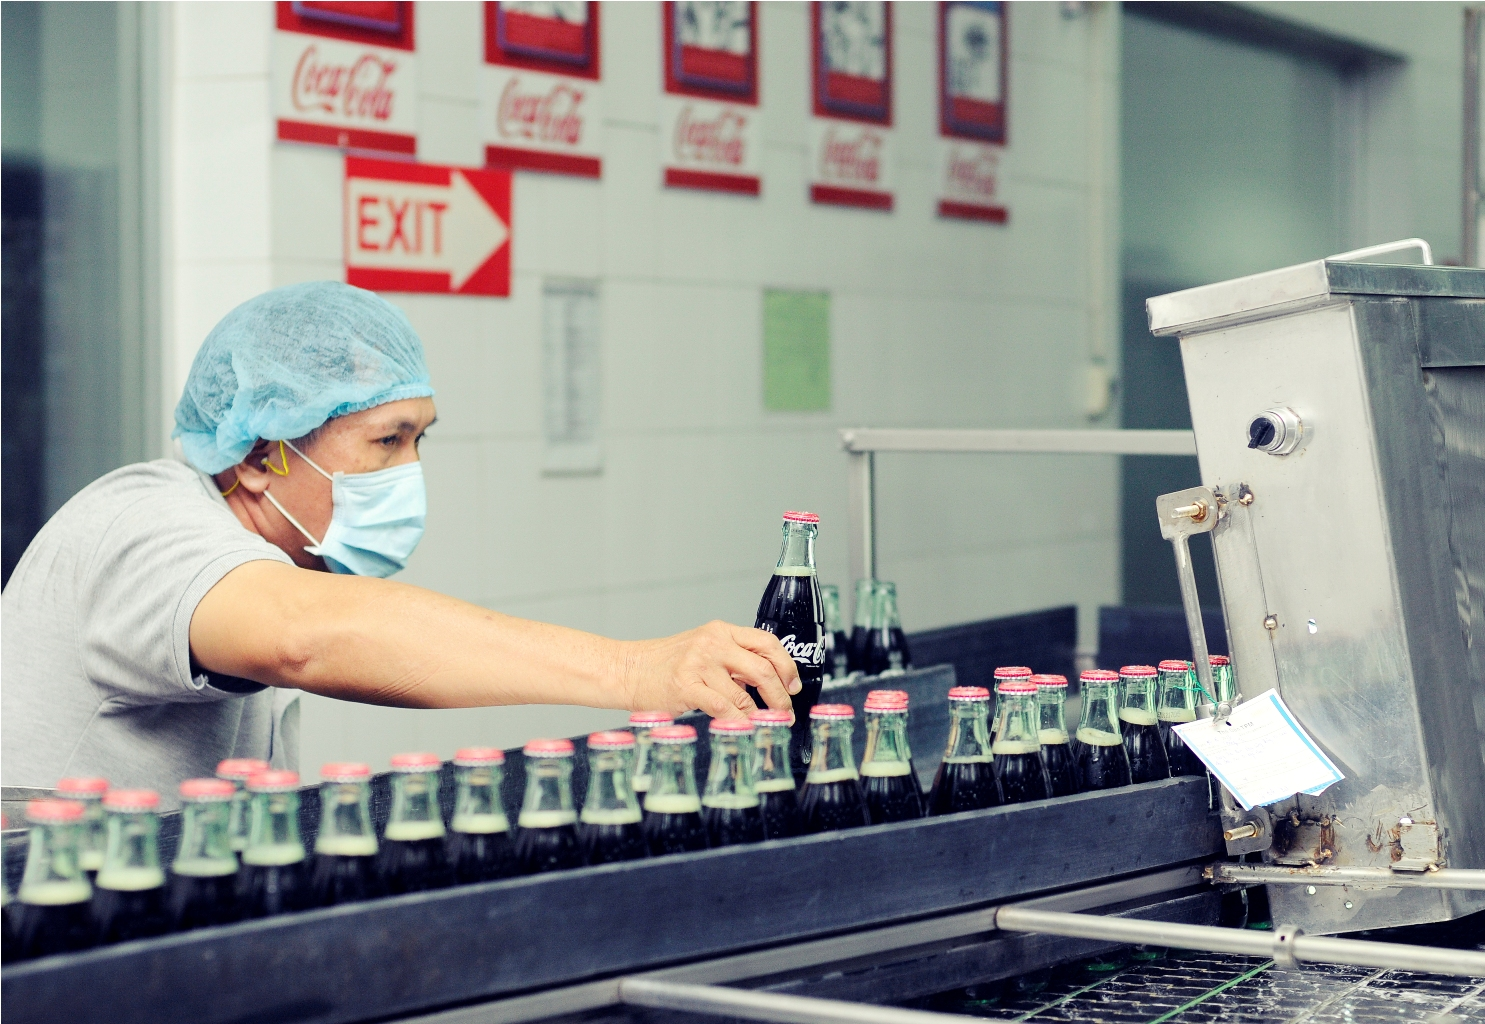 It's Coca-Cola's first priority to invest in modern production line and to ensure smooth operation of the manufacturing process